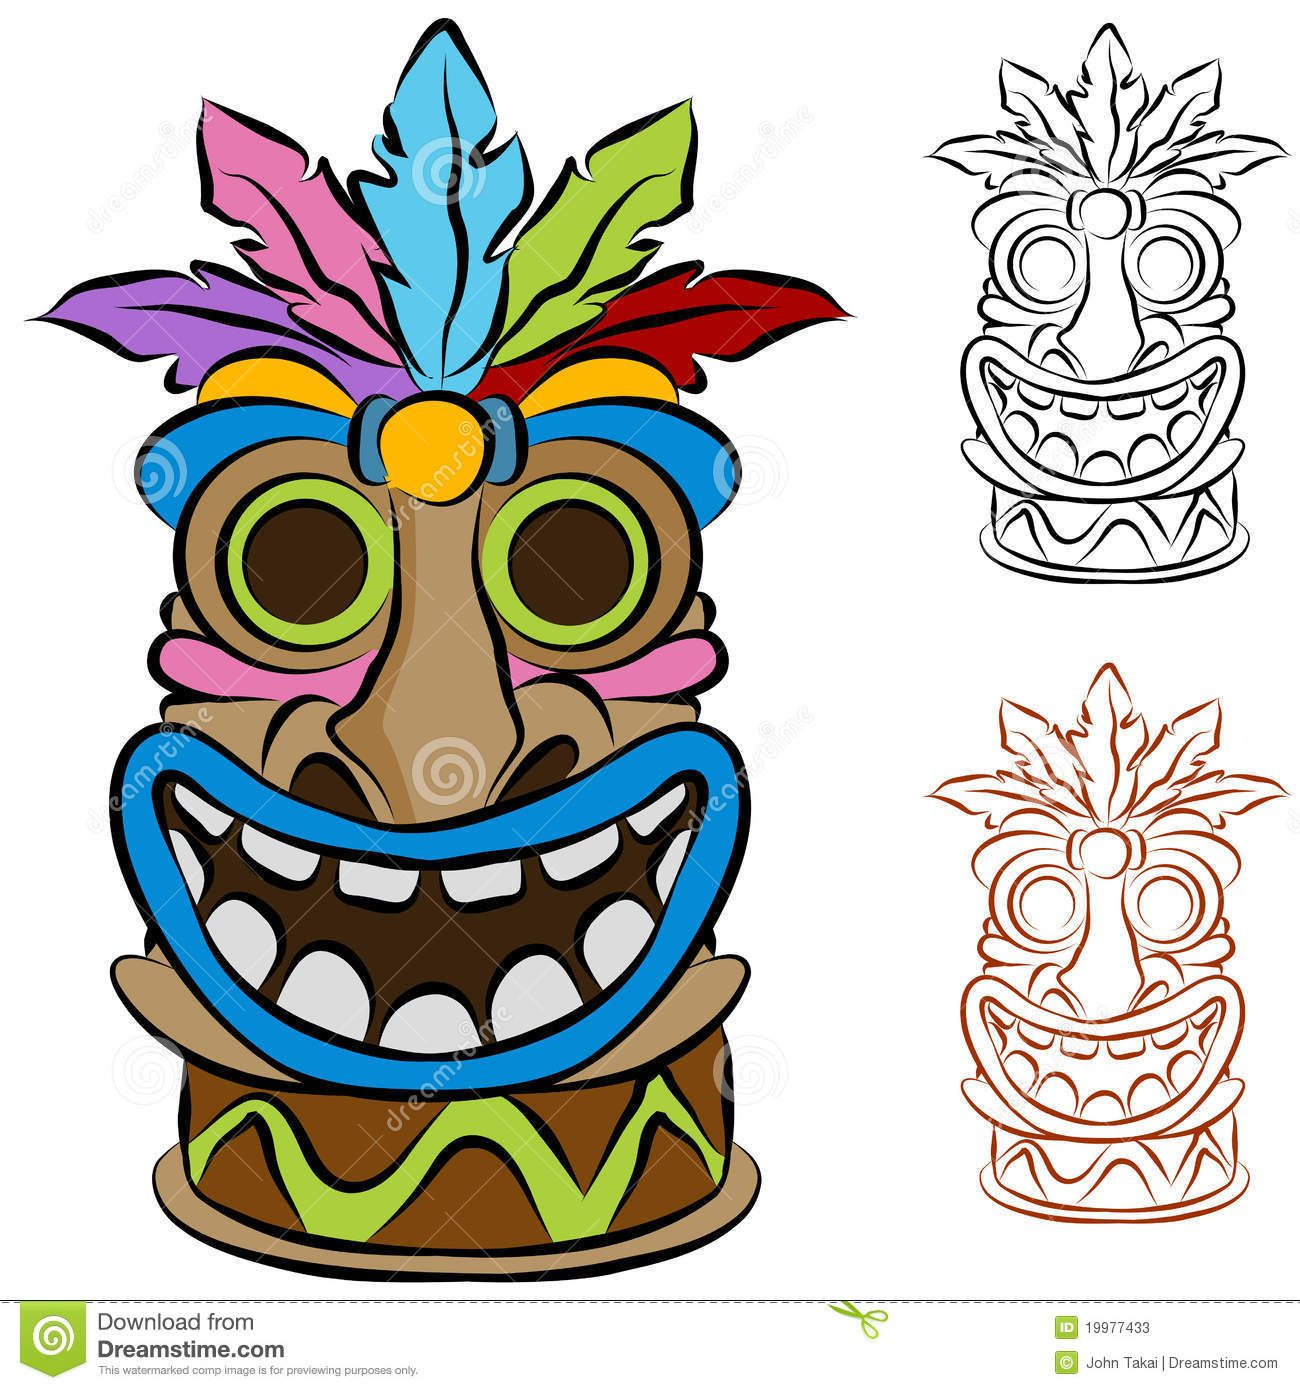 Liegestuhl clipart kostenlos  Happy Tiki Mask Clipart | LUAU PARTY | Pinterest